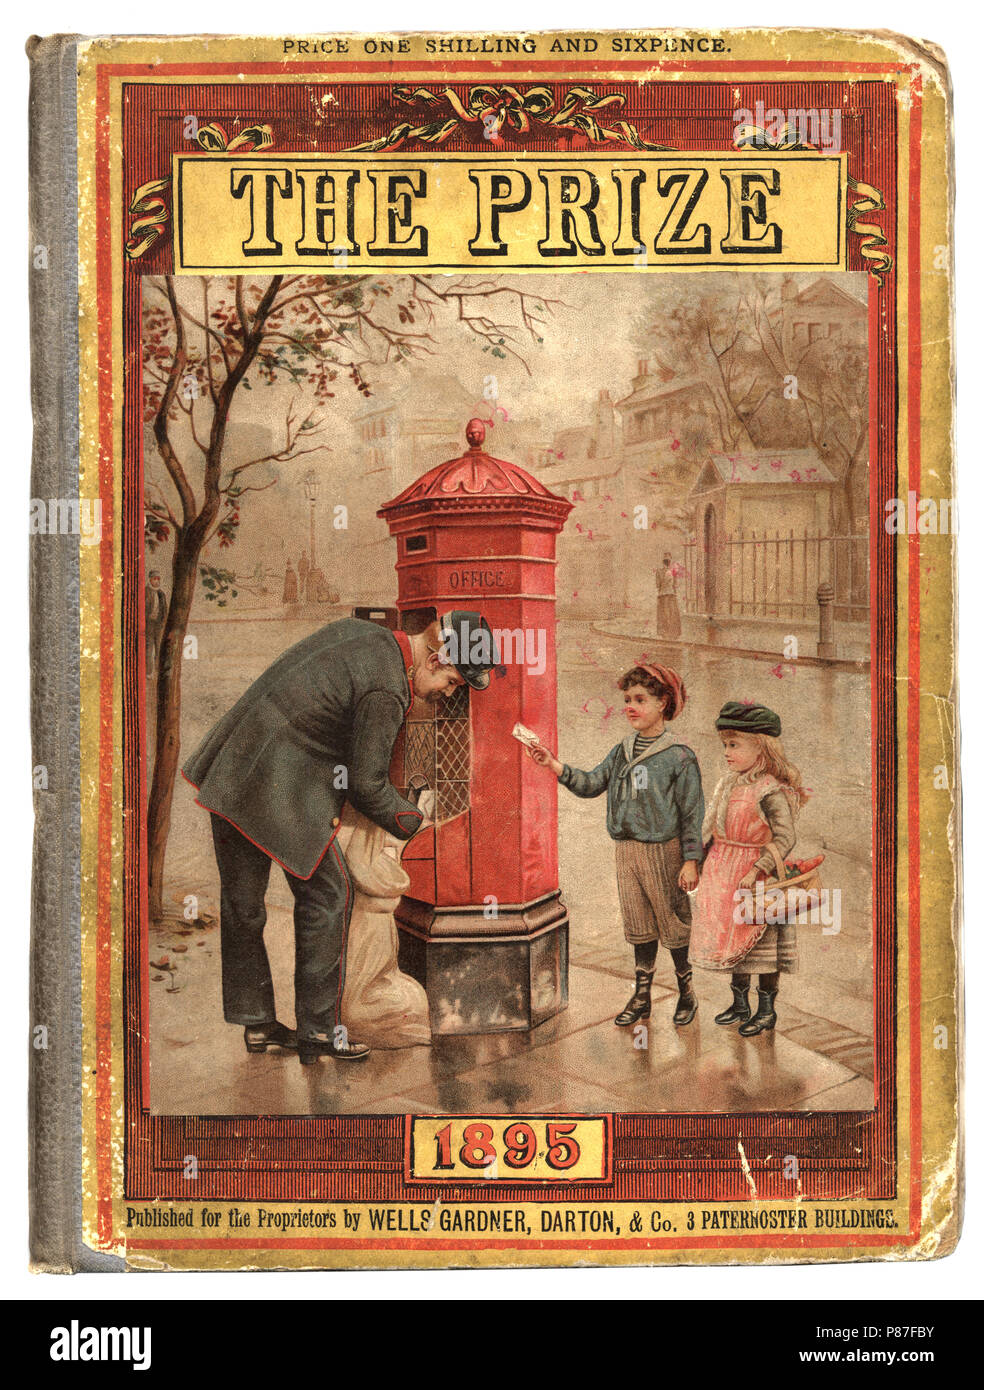 Front cover of the victorian childrens magazine The Prize, Postman collecting the mail - Stock Image